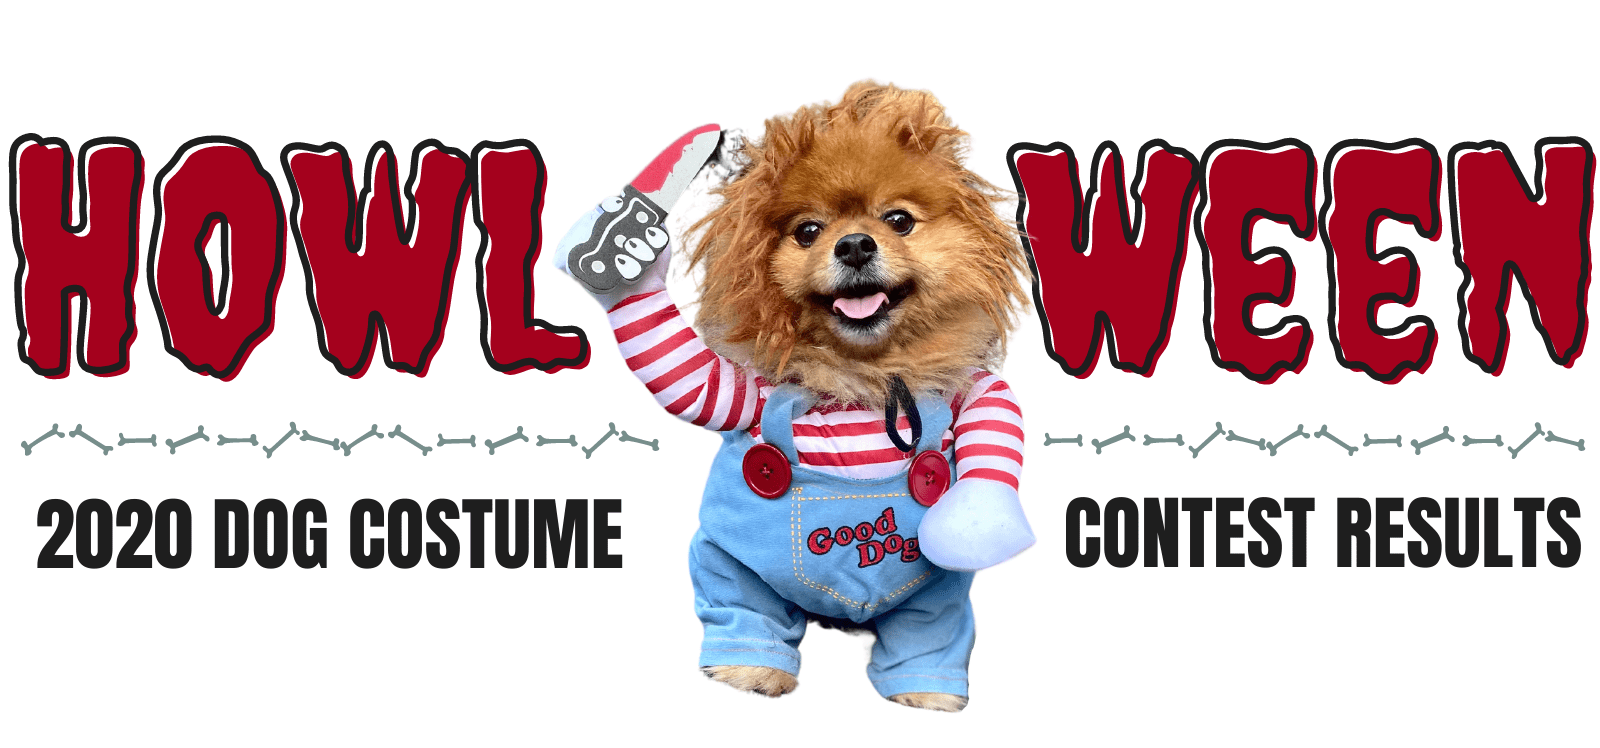 howl-o-ween sign with dog dressed as chuckie